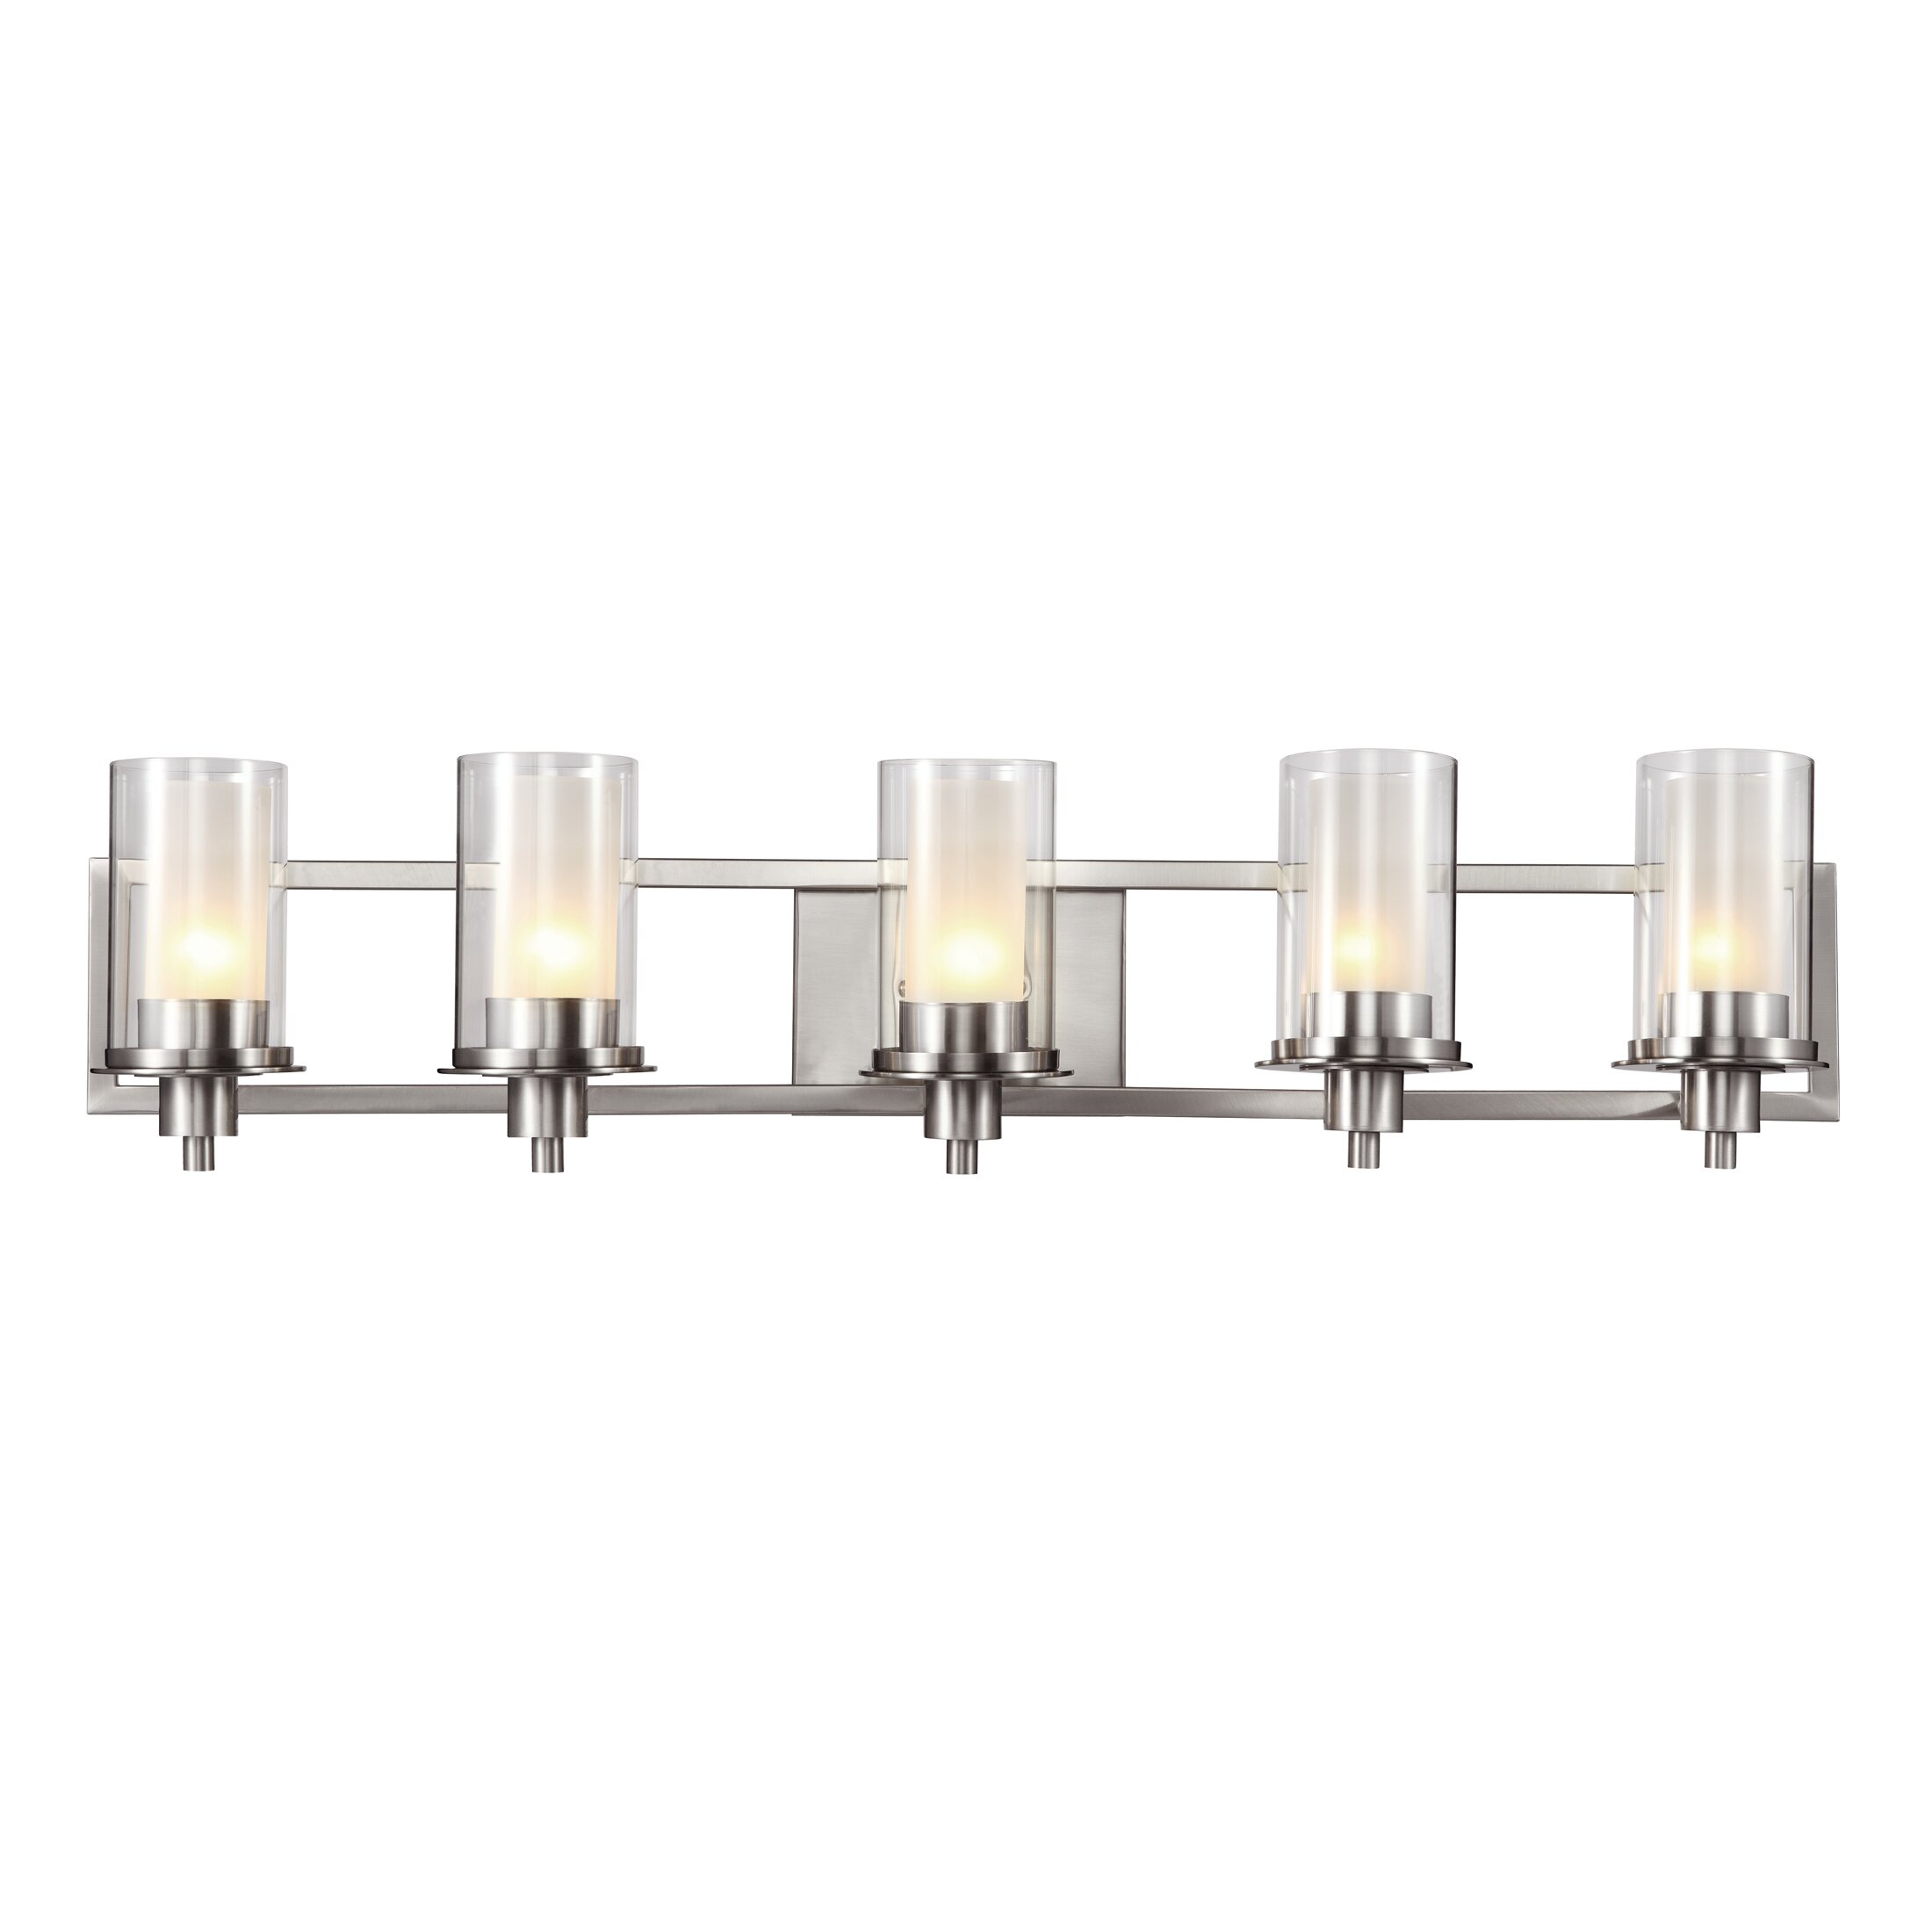 TransGlobe Lighting 5 Light Vanity Light & Reviews